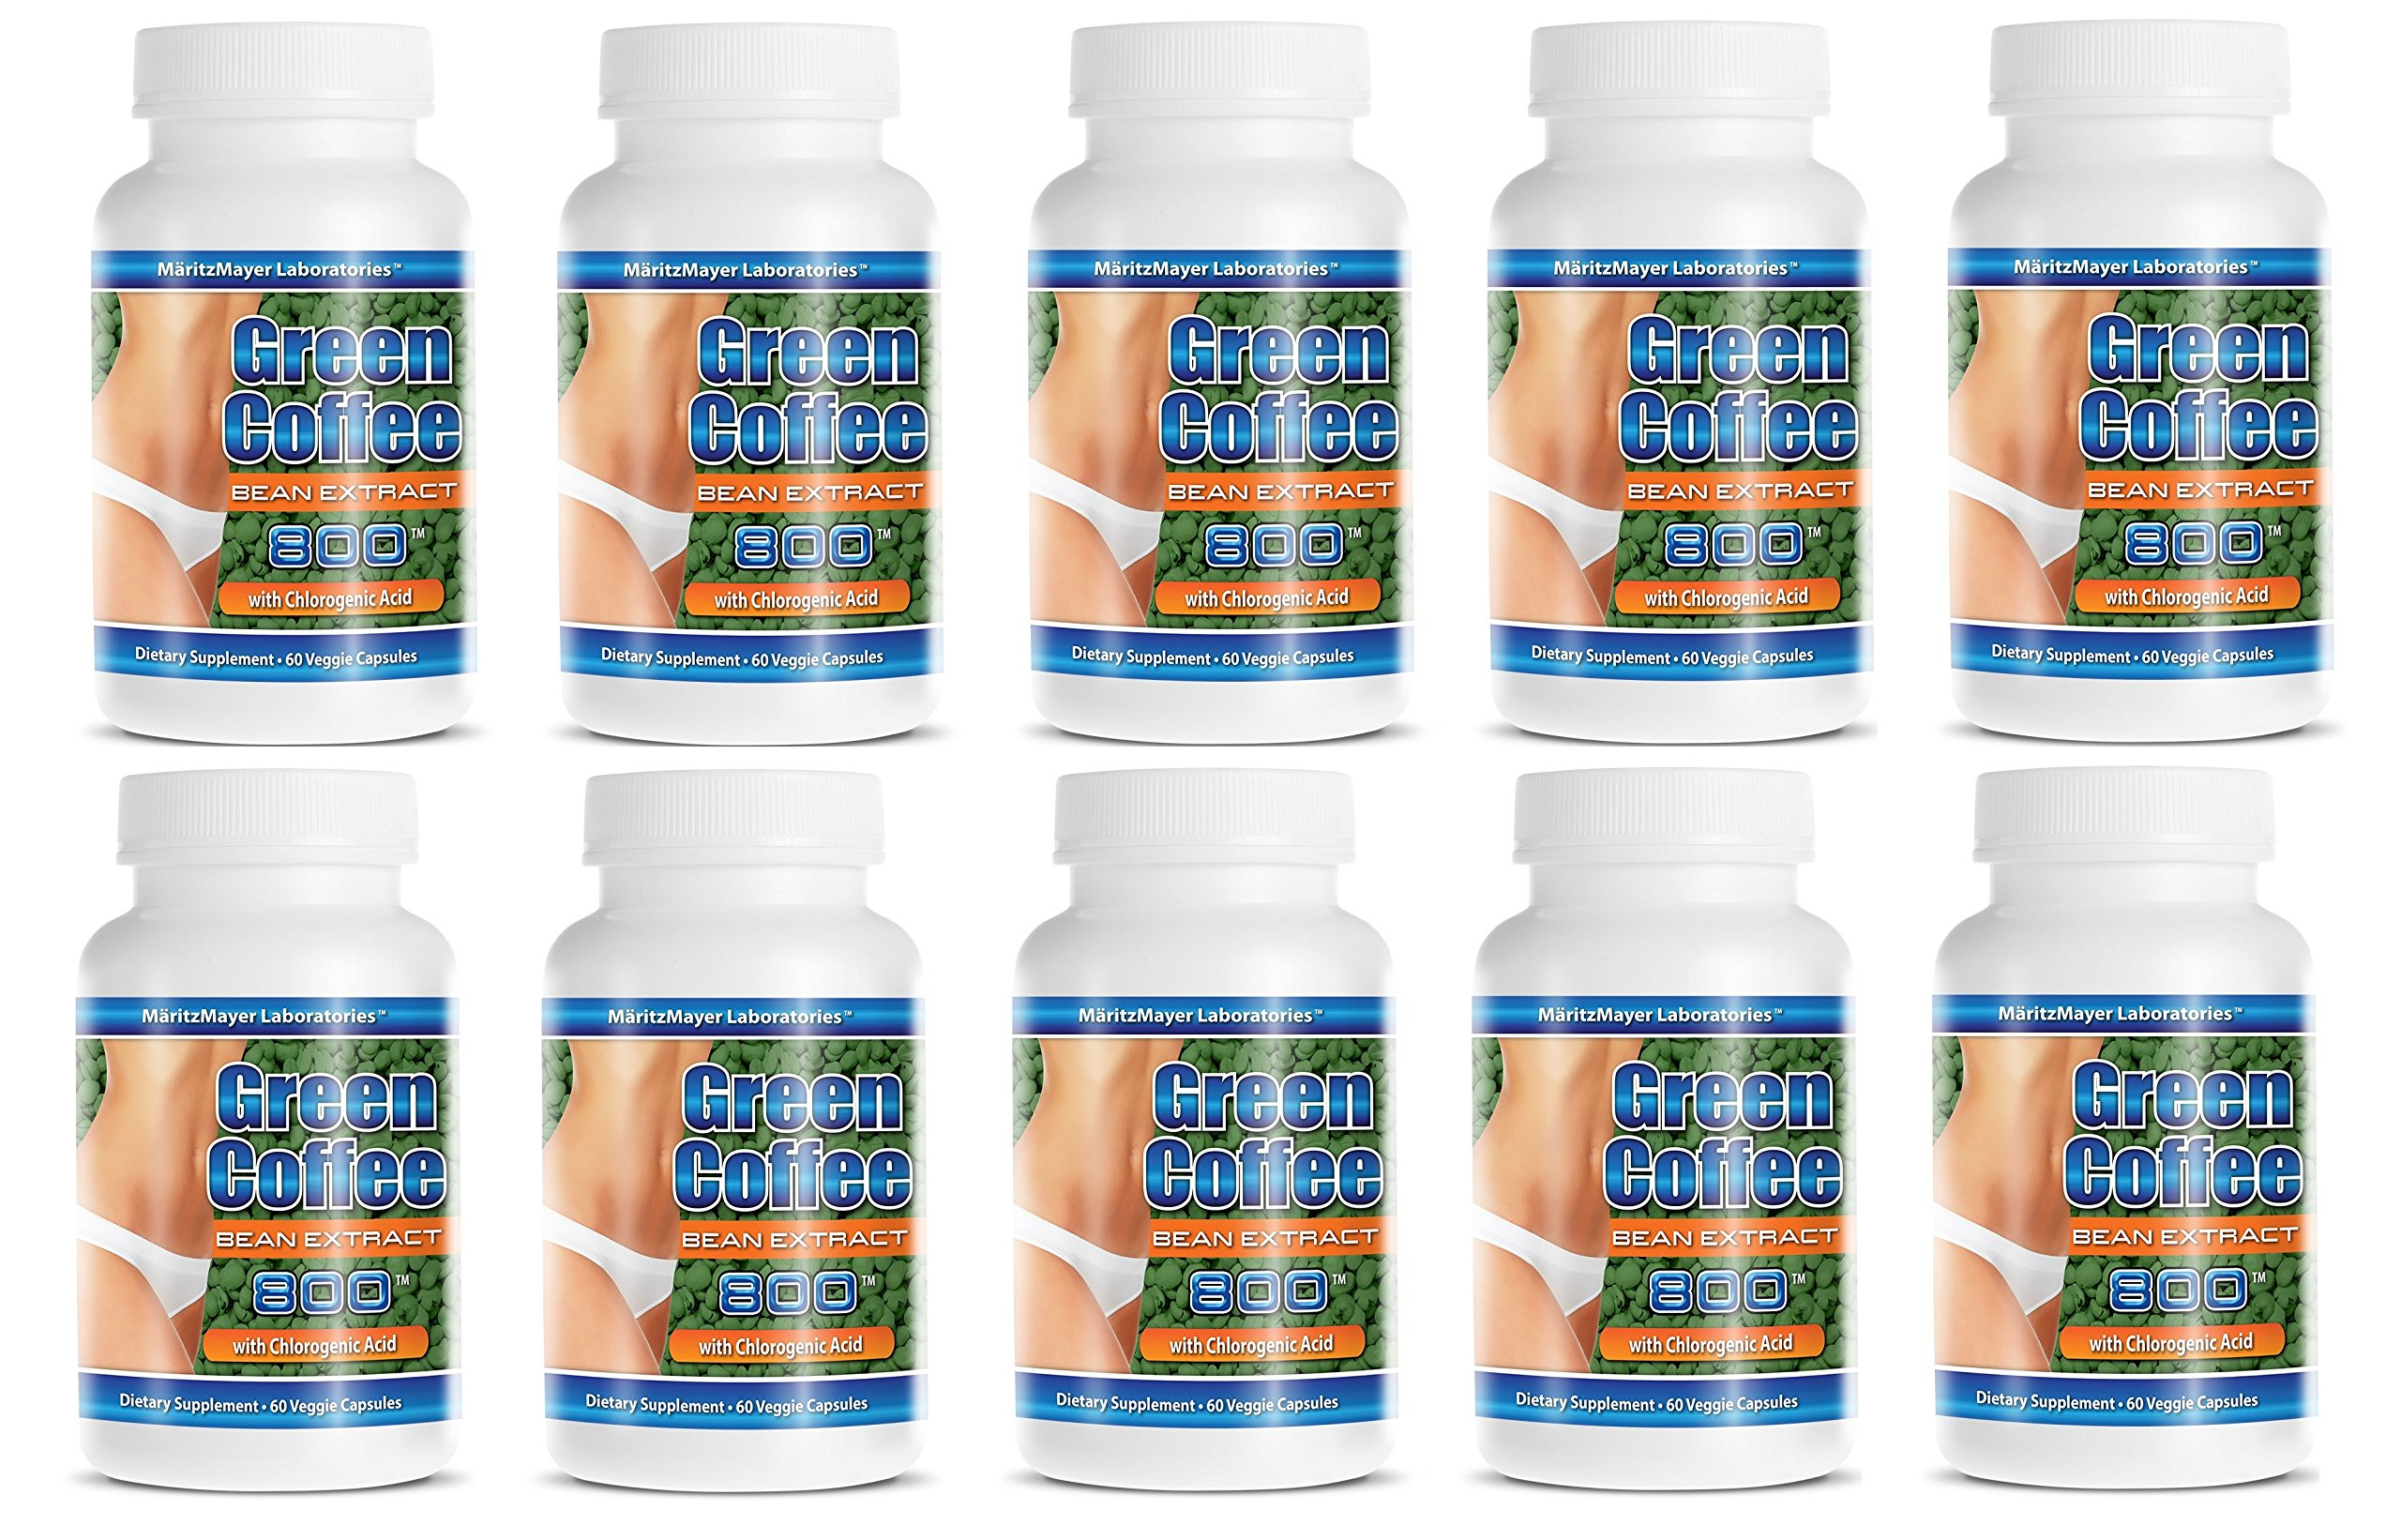 Pure Green Coffee Extract 800 mg Diet Weight Loss Pill 60 Capsules Per Bottle (10 Bottles)